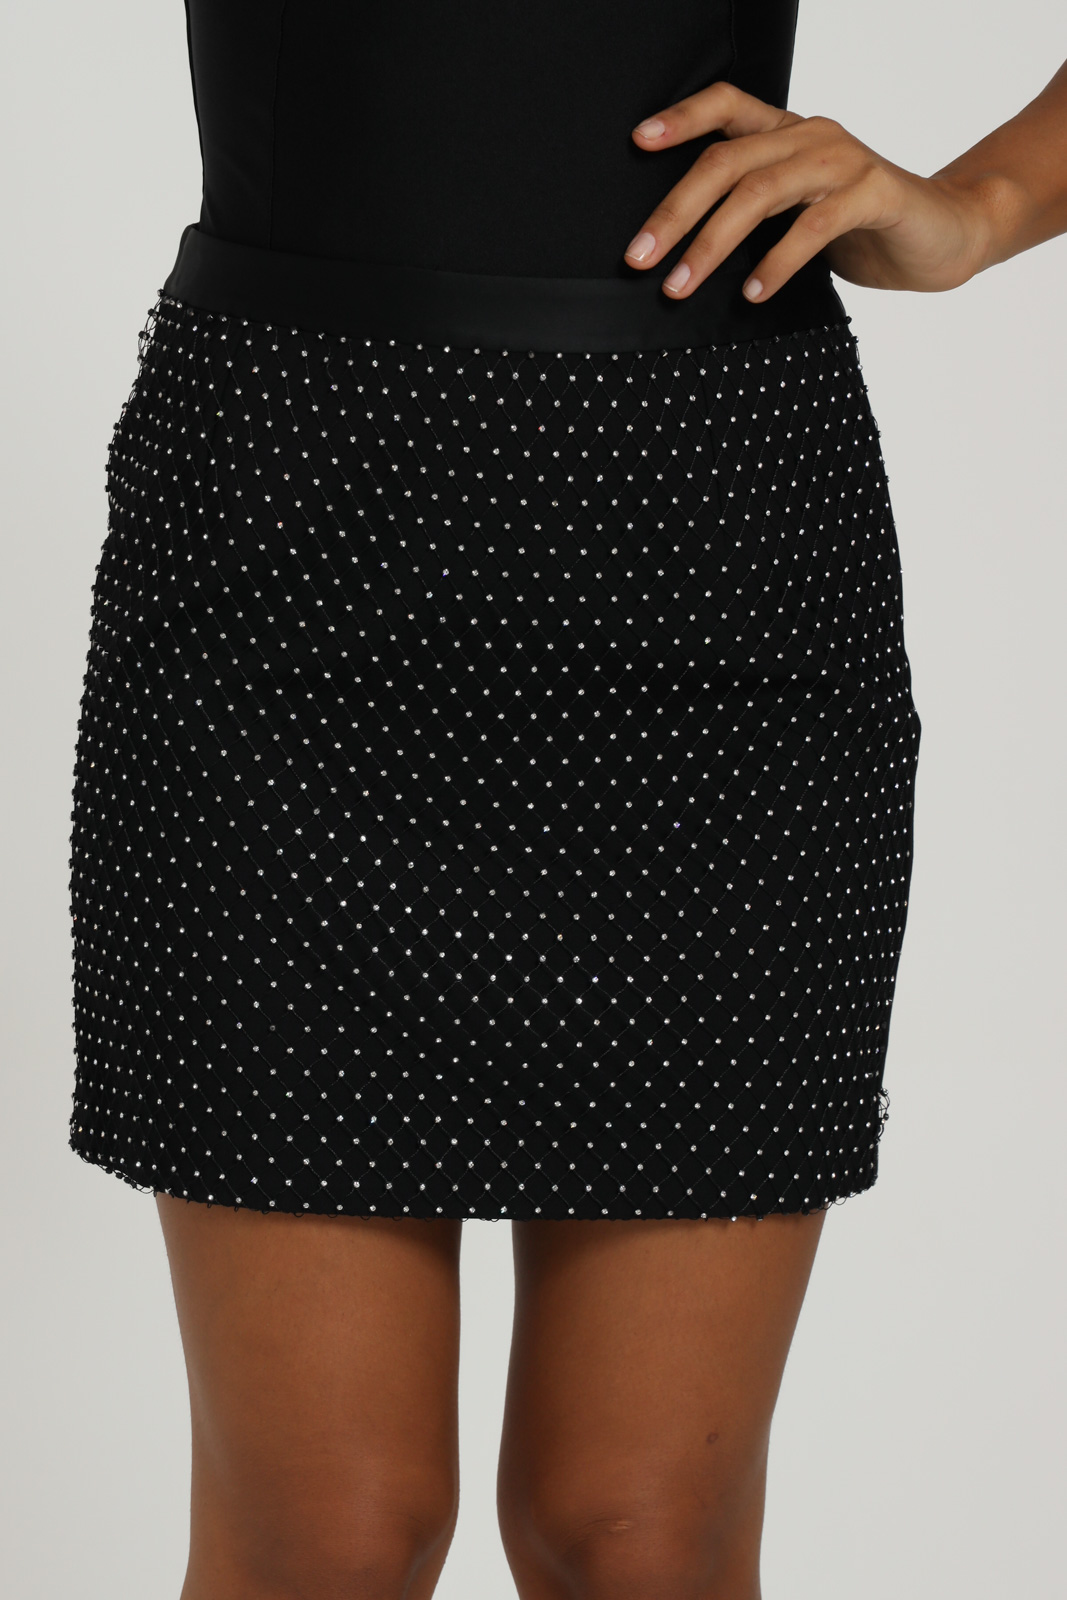 ISABELLE BLANCHE | Skirt | IS20FW-G154900